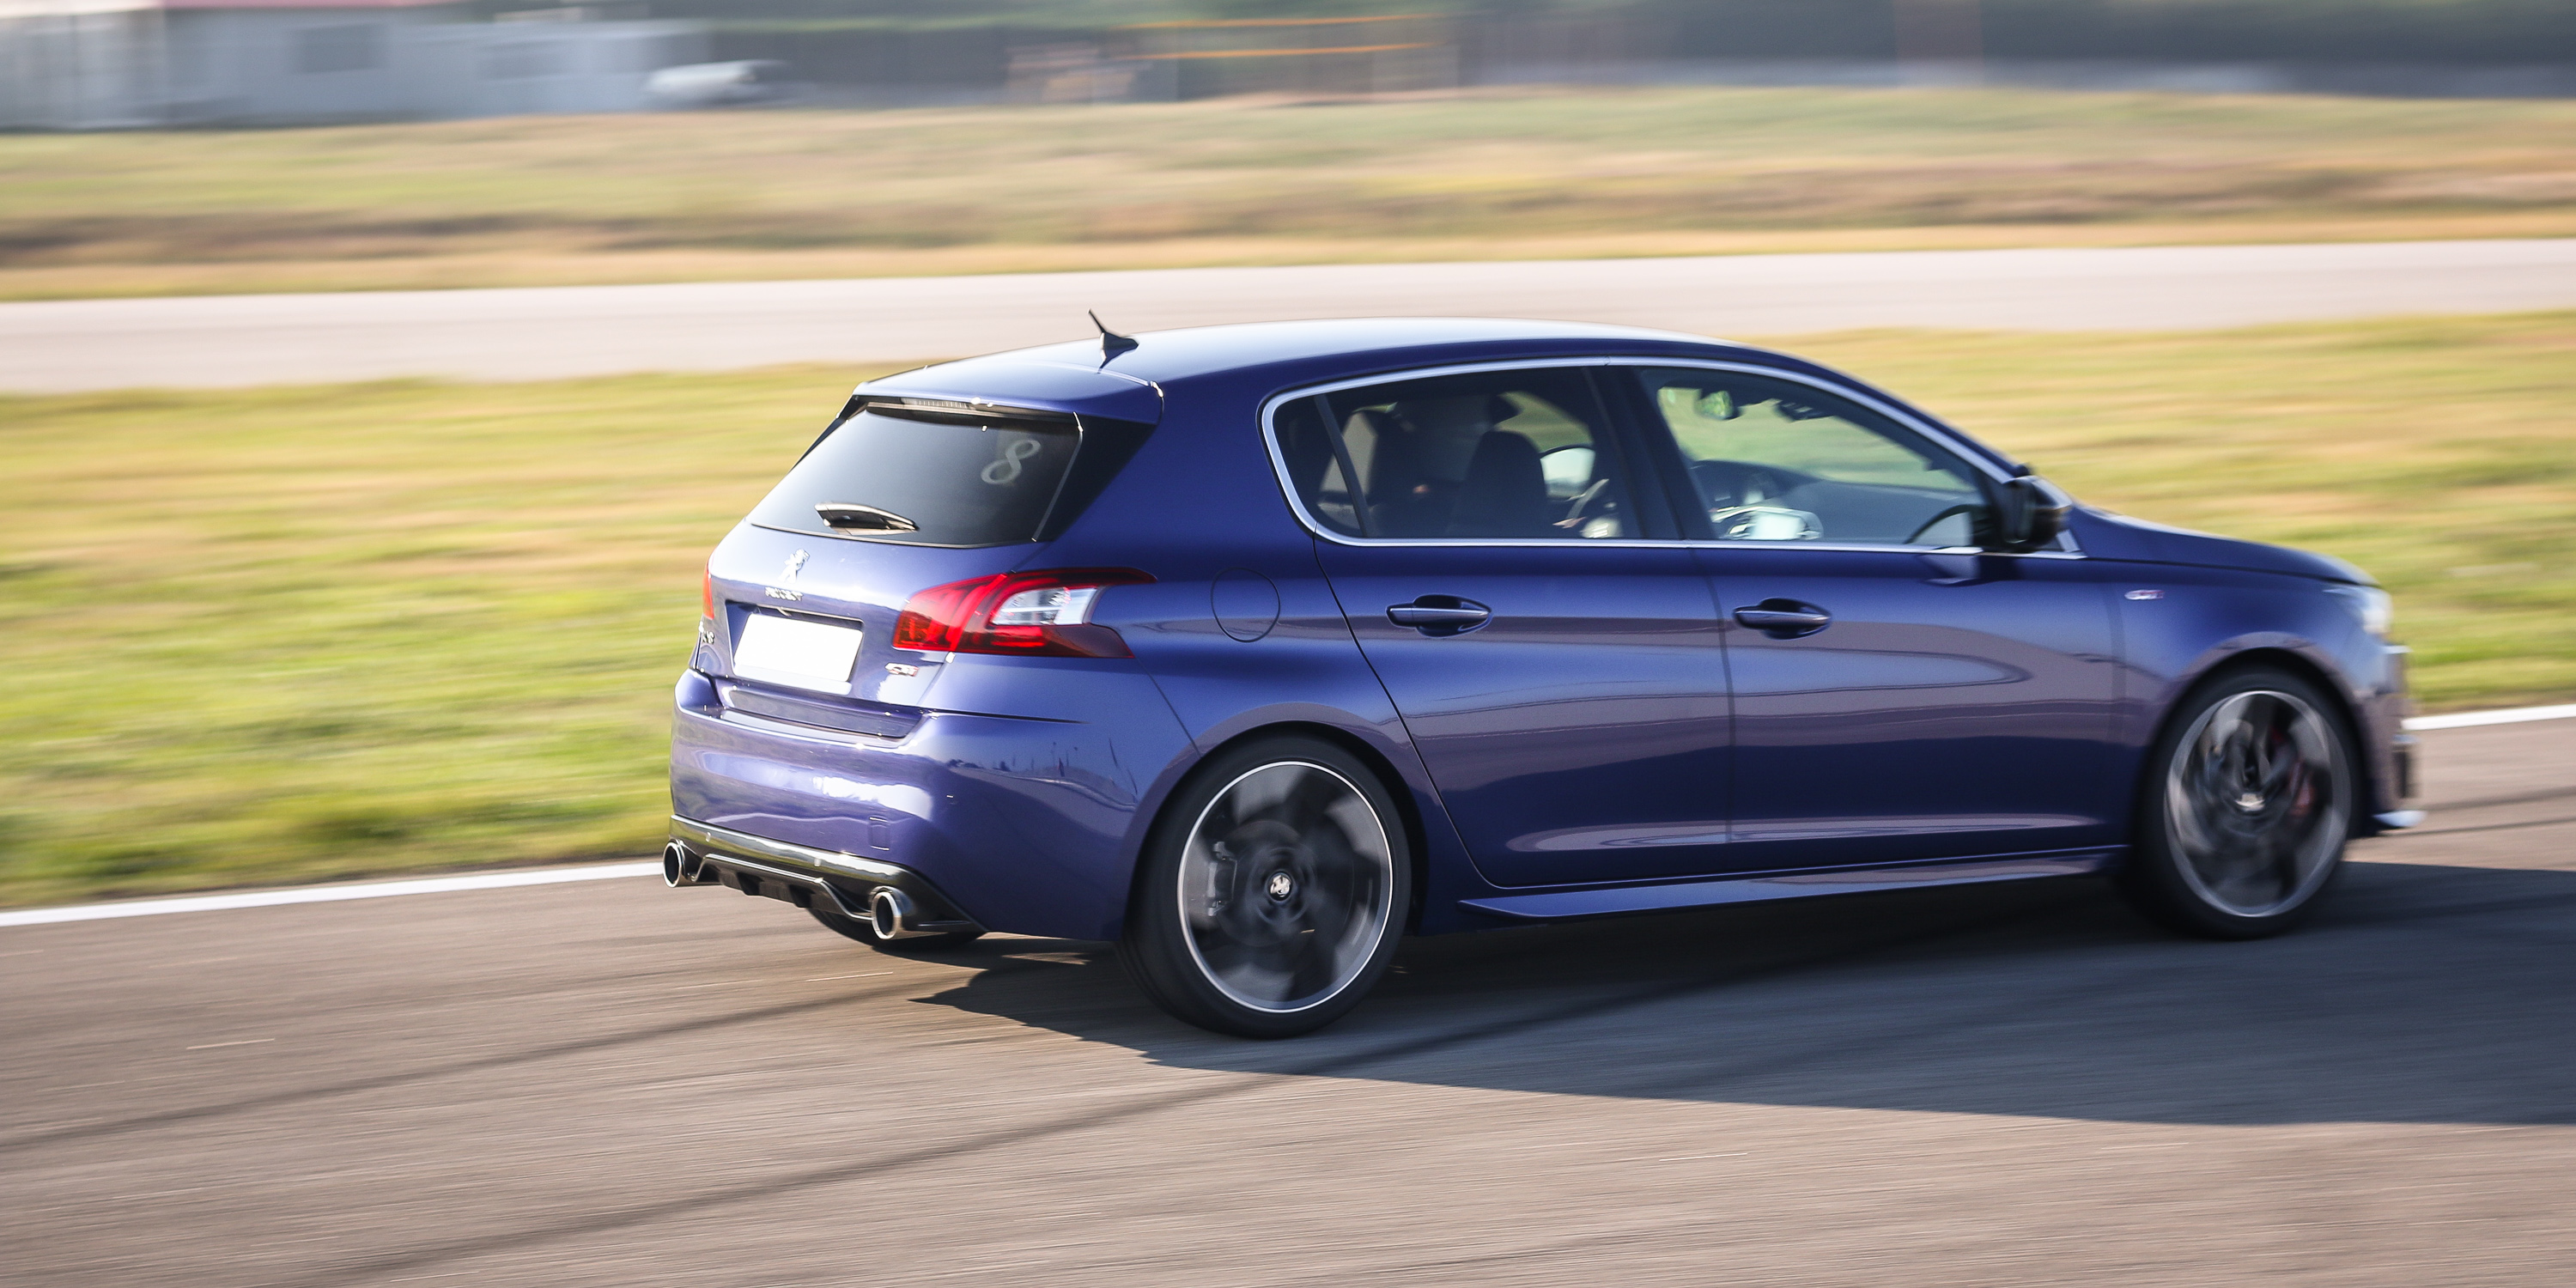 2016 Peugeot 308 Gti Blue (View 9 of 15)